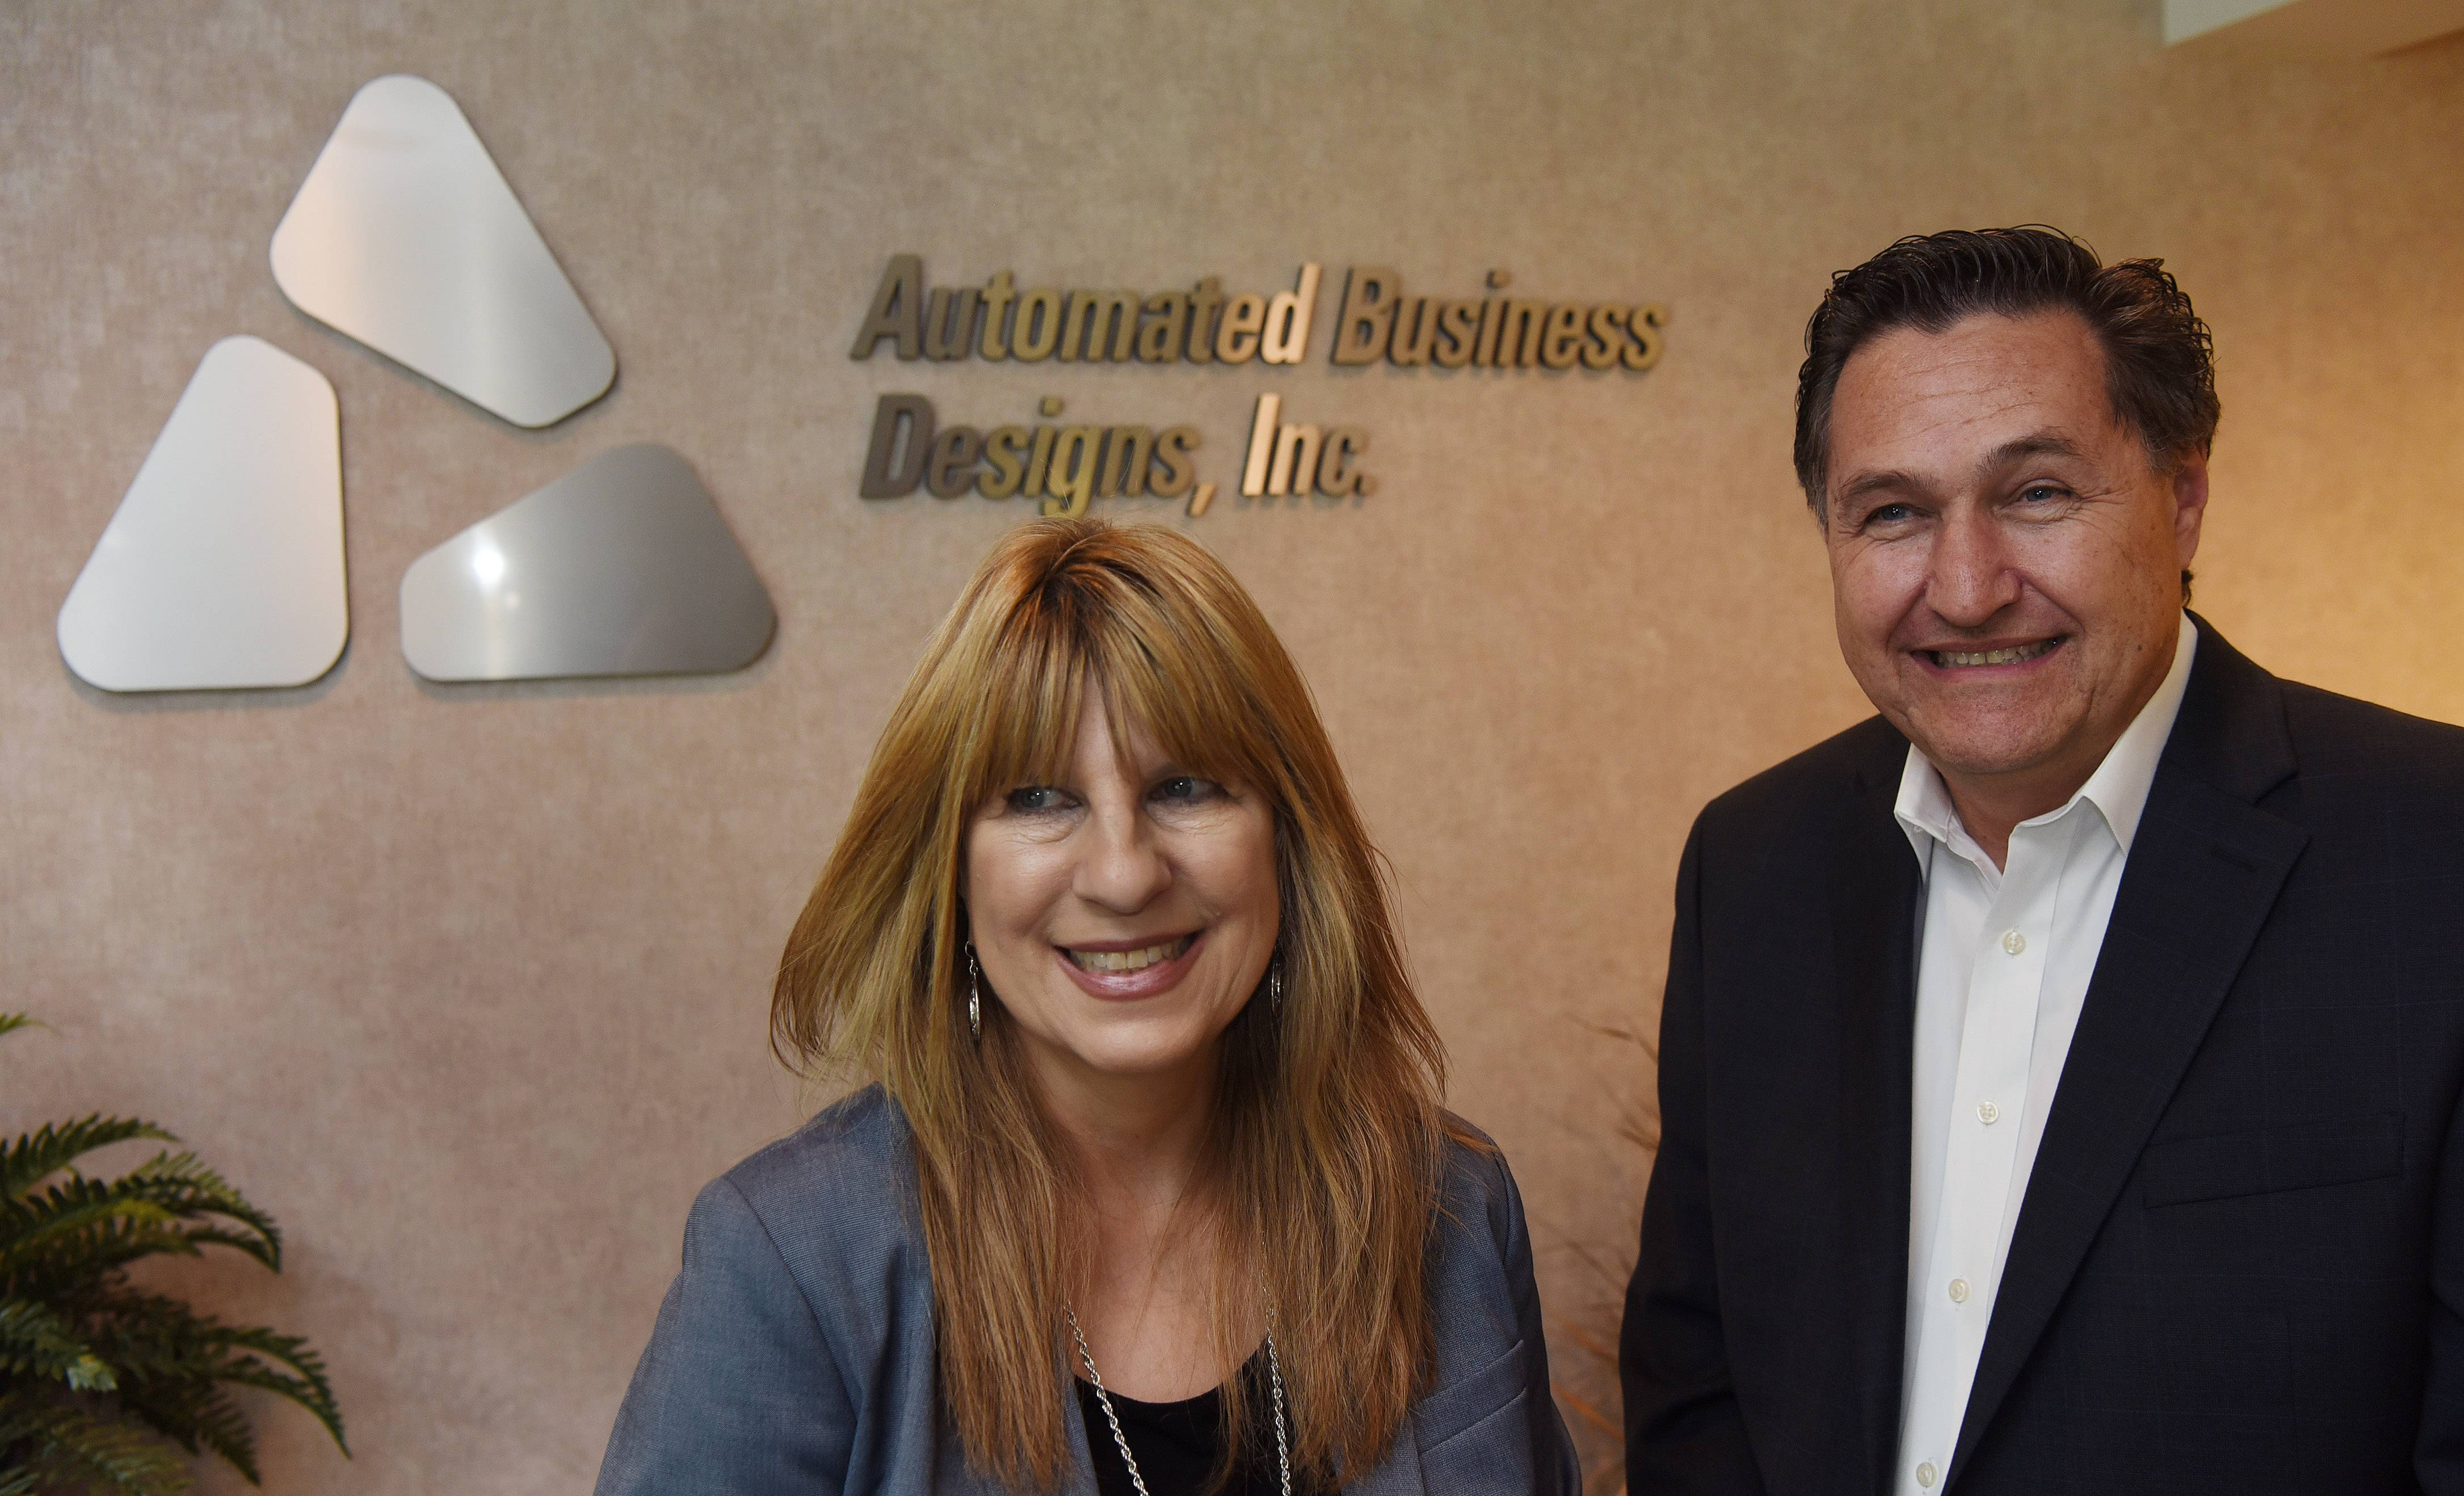 Terri and John Roeslmeier are the owners of Automated Business Designs in Rosemont, which is celebrating 33 years as an IT company focused on the staffing industry.